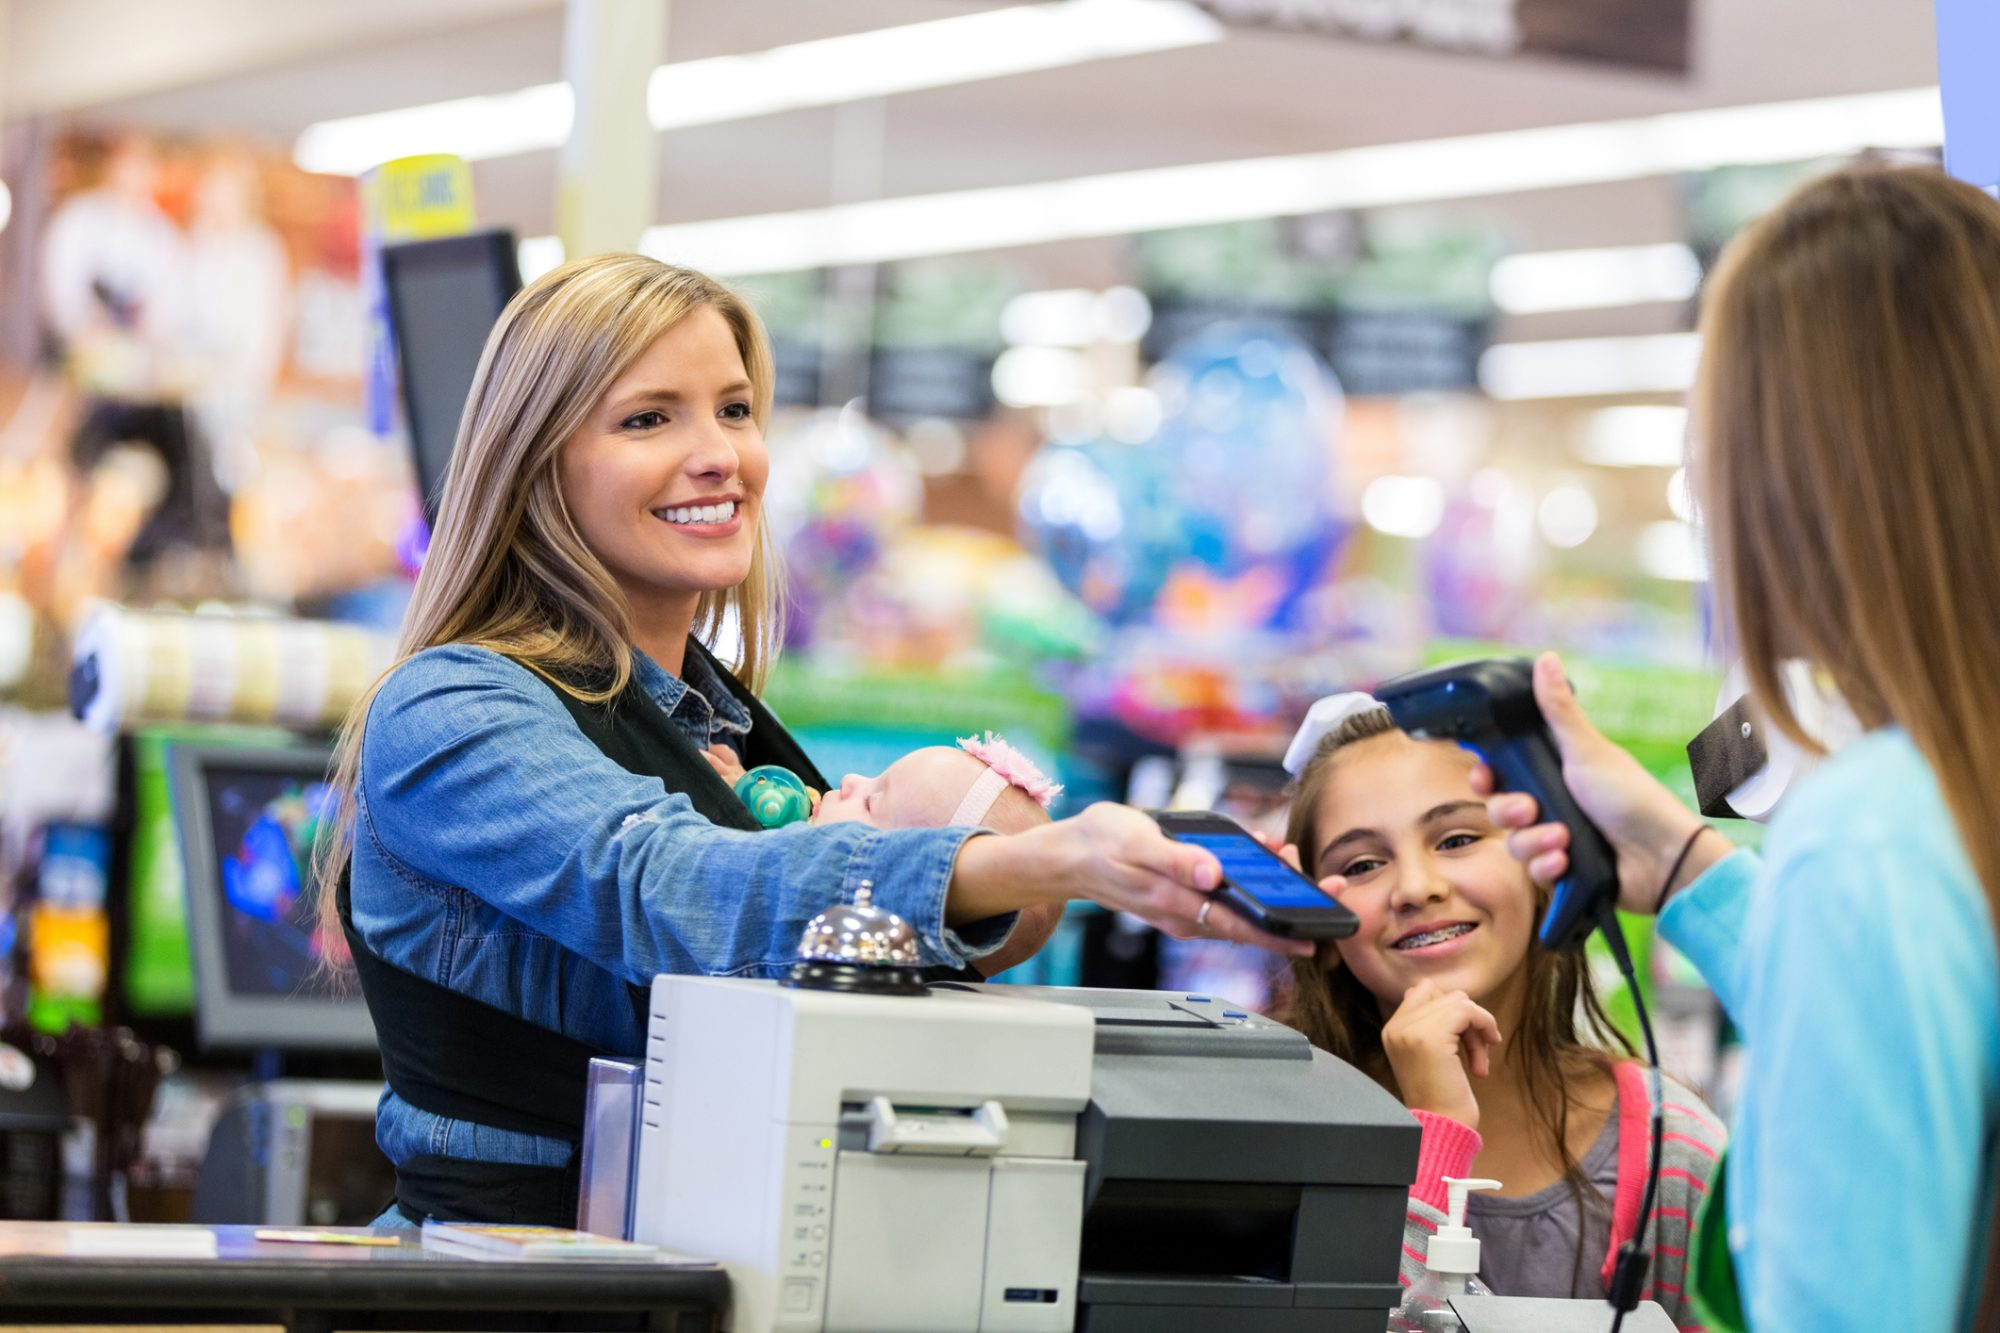 Mid adult Caucasian woman is smiling while using her smart phone to pay for purchases or use coupons in local grocery store. Cashier is using hand held scanner to scan barcode on smart phone. Mother is standing at checkout counter with elementary age daughter. She is wearing her infant in a baby carrier wrap while she shops.